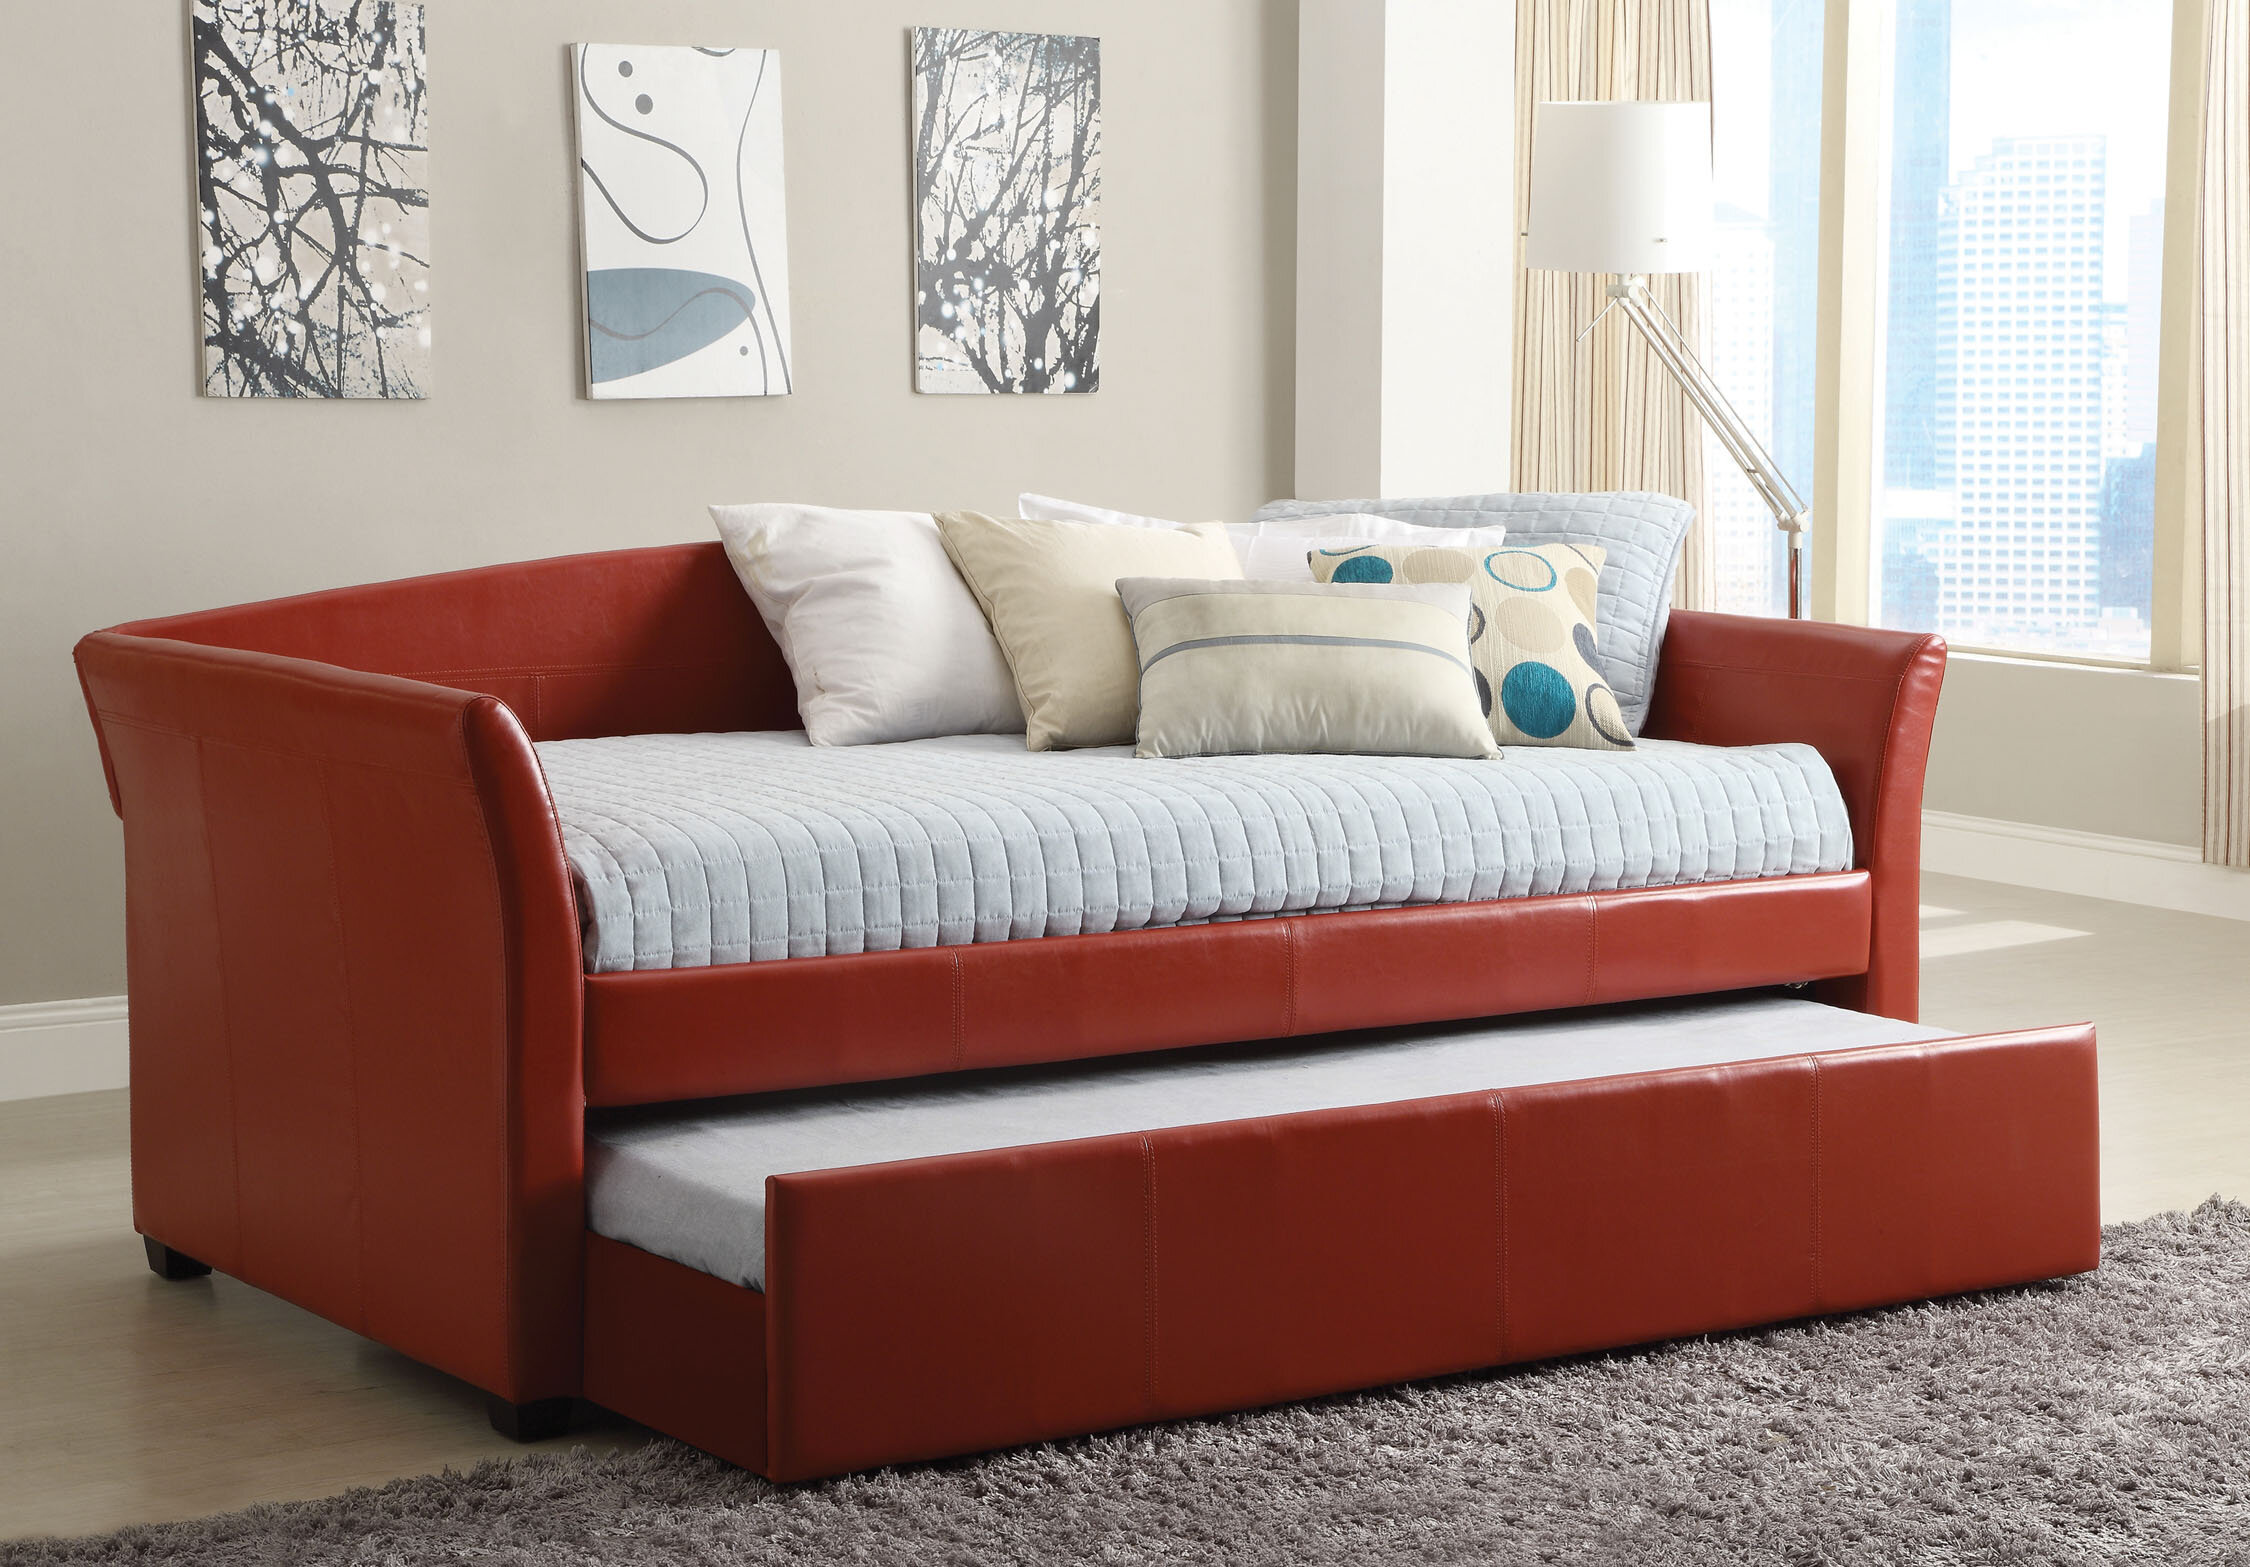 Enjoyable Roma Twin Daybed With Trundle Andrewgaddart Wooden Chair Designs For Living Room Andrewgaddartcom